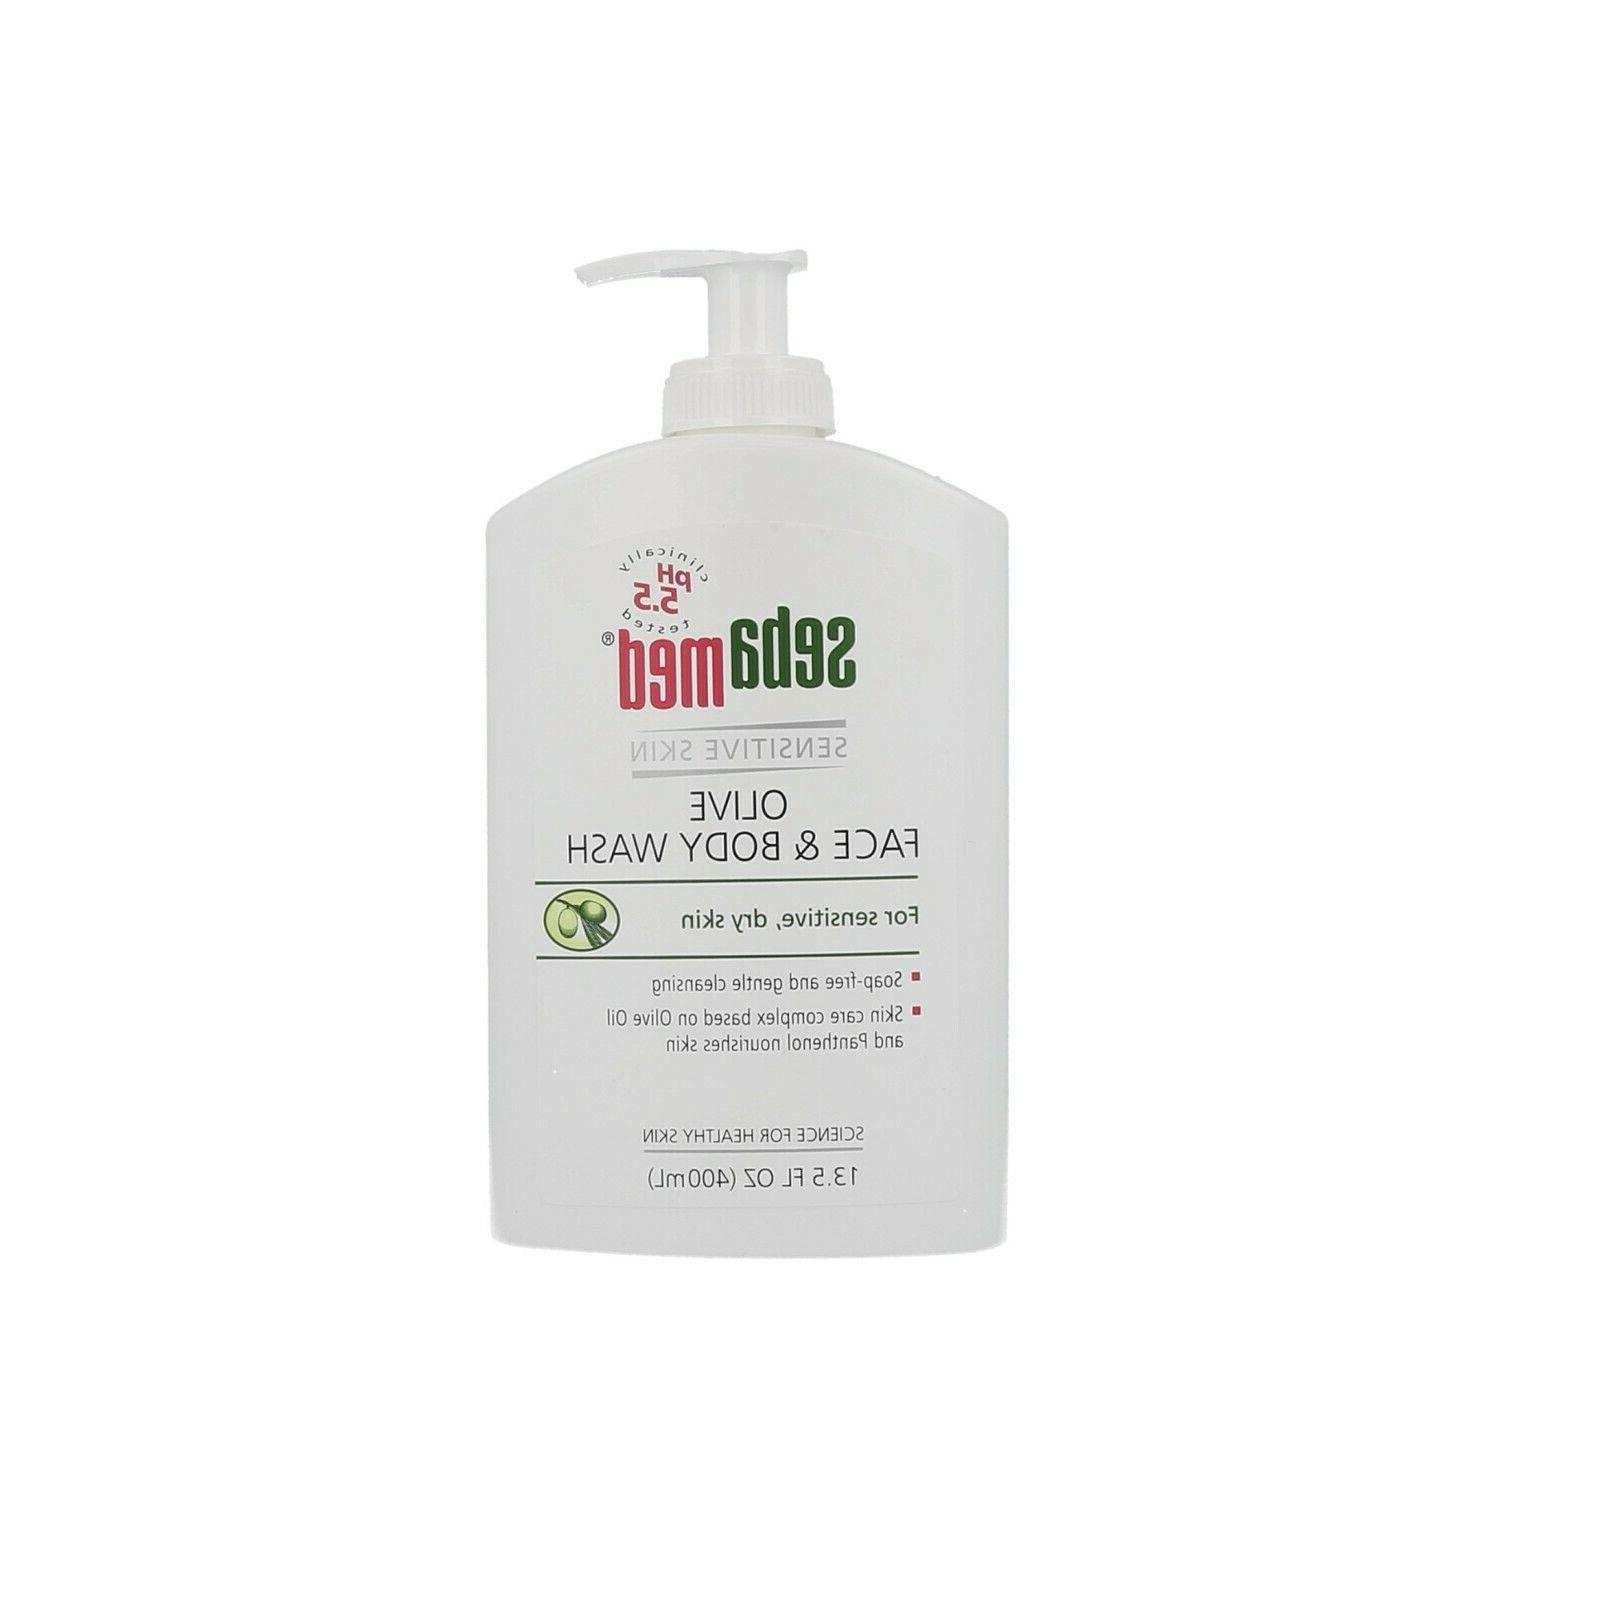 Sebamed Baby Wash - Extra Soft, 6.8-Ounce Bottle Pack of 5